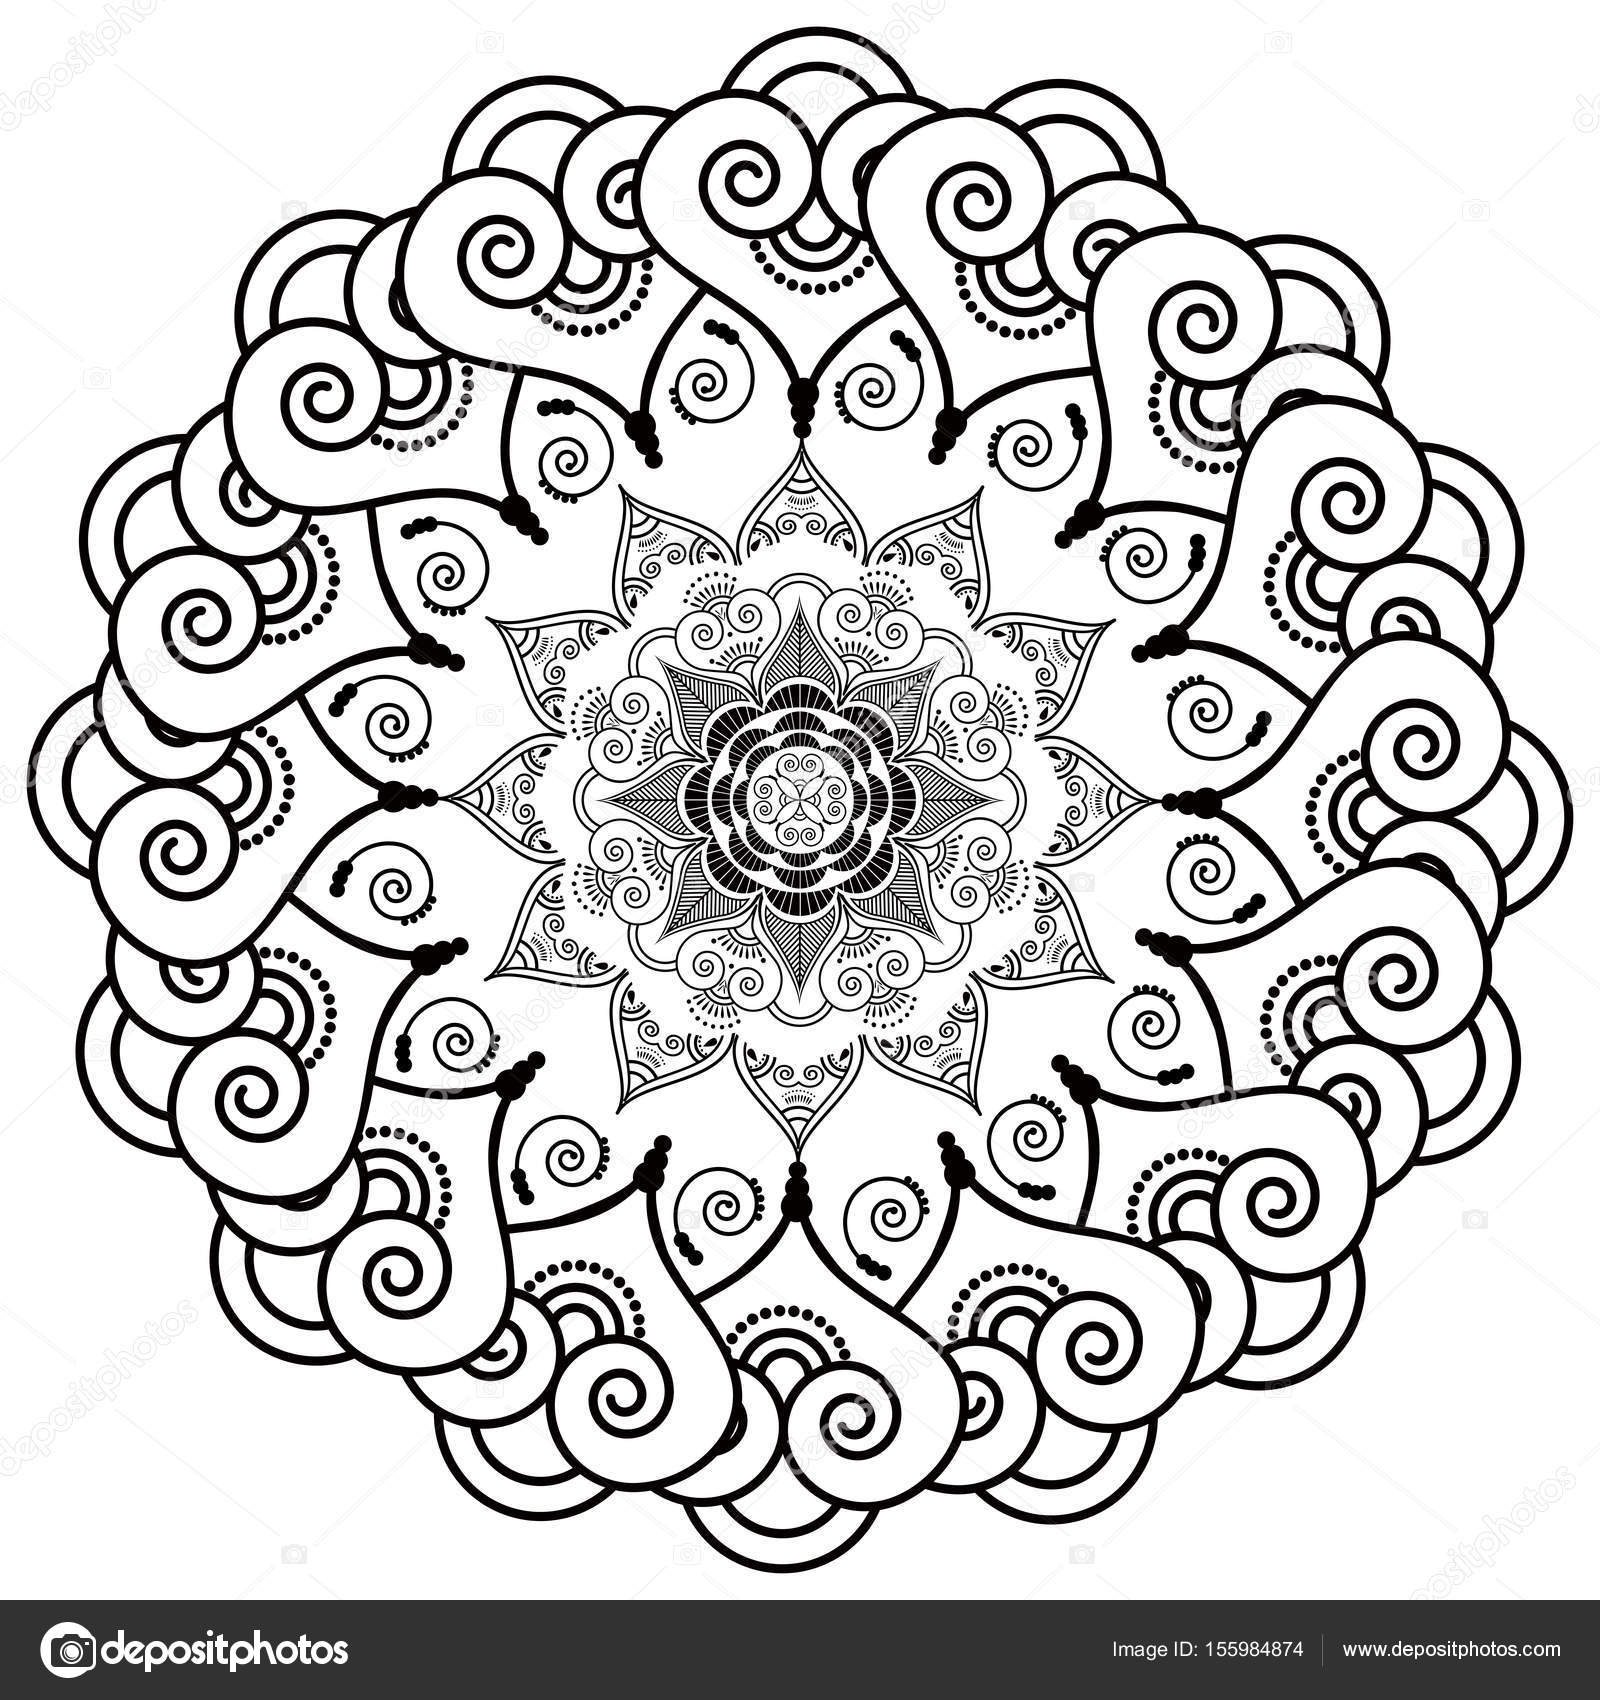 1600x1700 Rosette Style Mandala Flower Inspired By Asian Culture And Henna